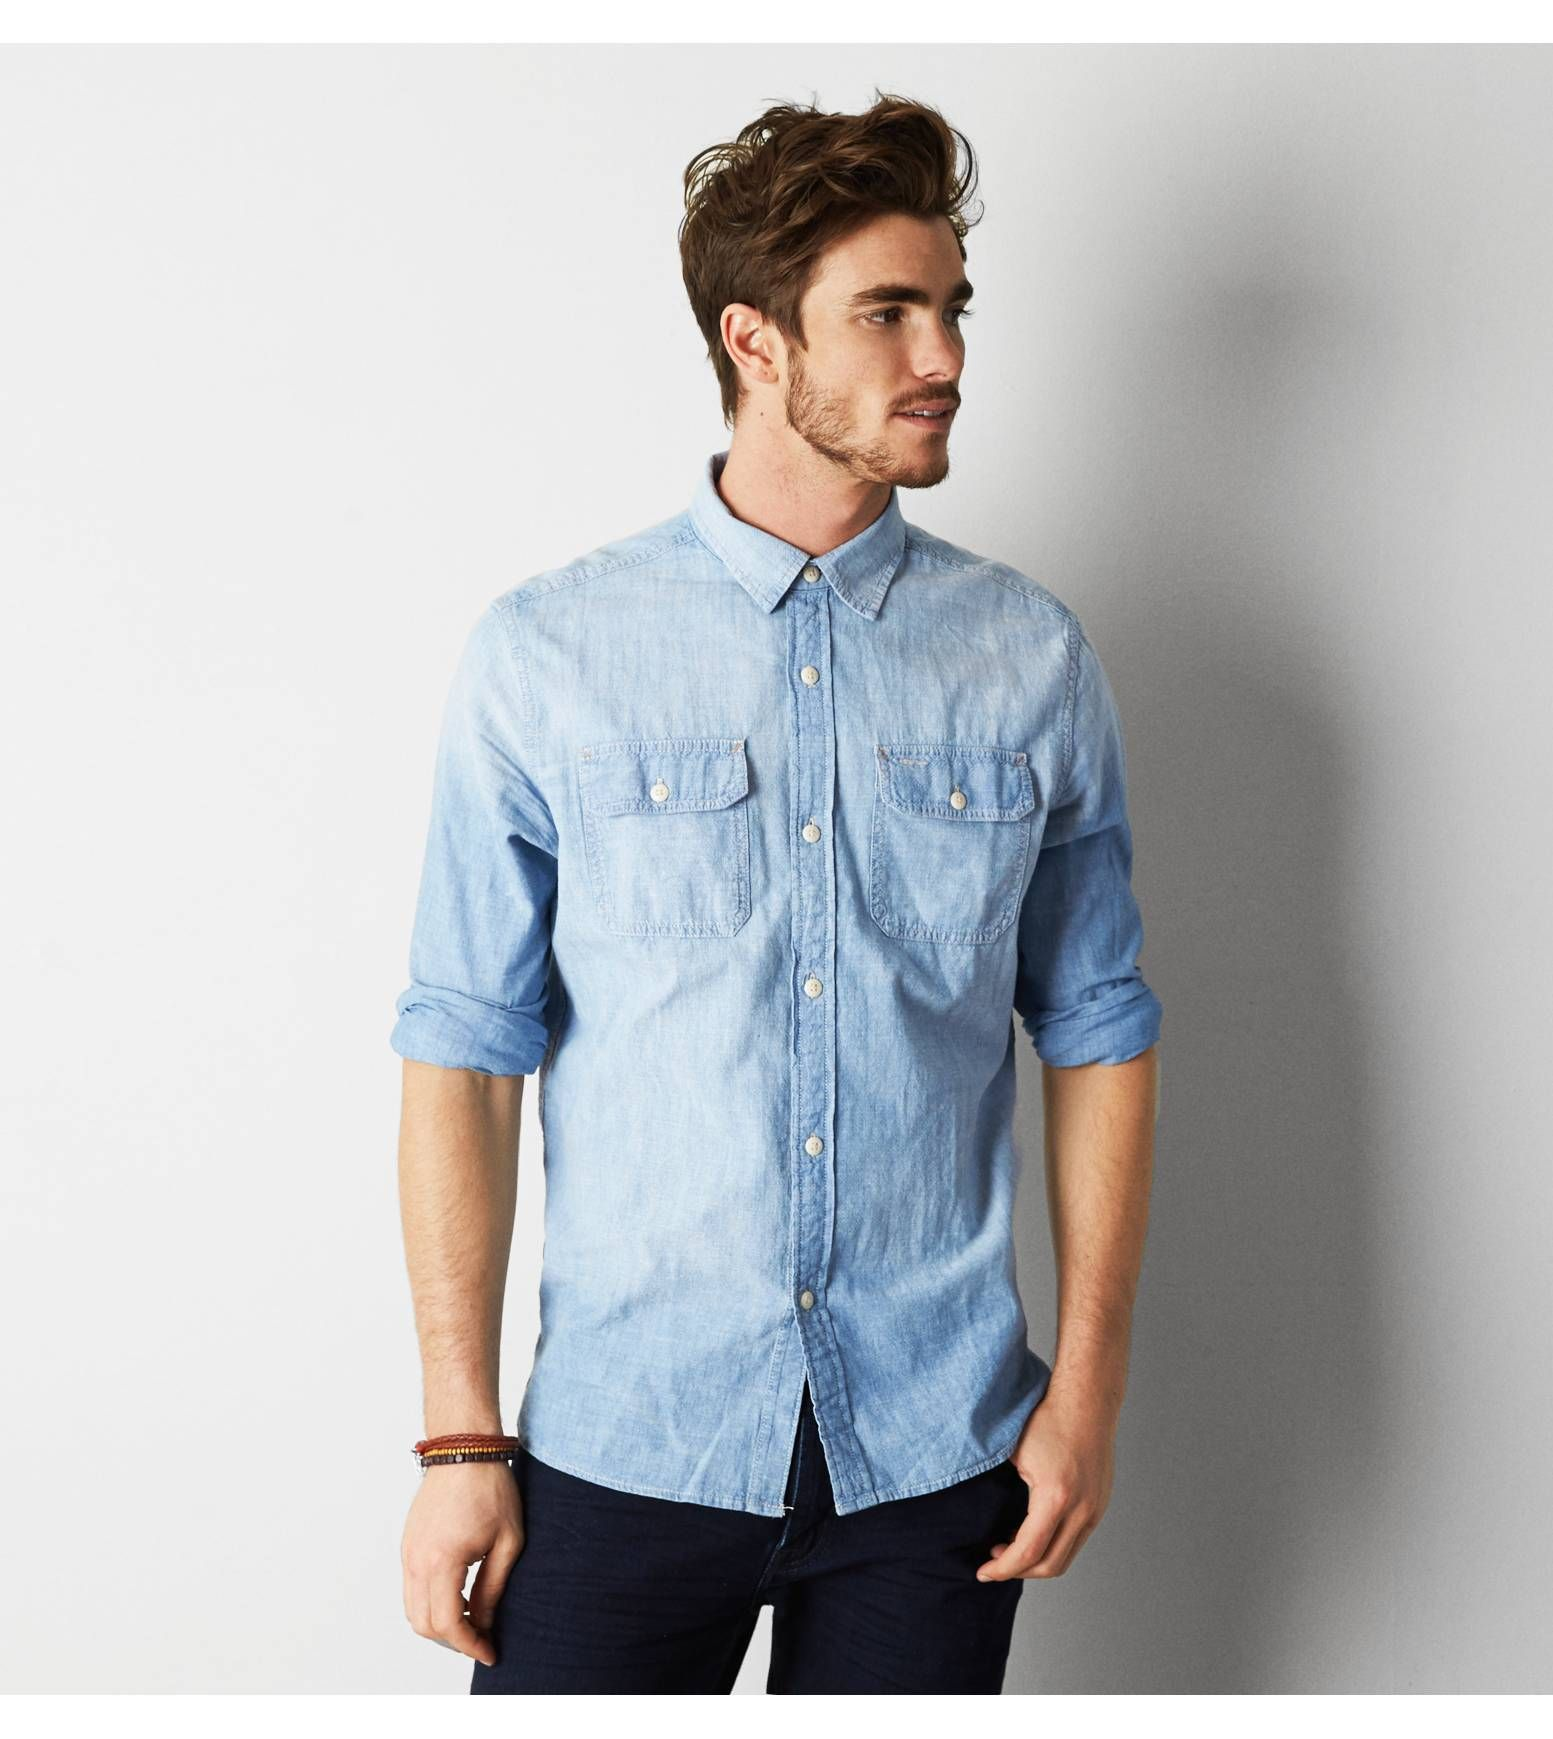 Light Blue AEO Denim Workwear Shirt. Show us your #AEOSTYLE on Instagram or  Twitter